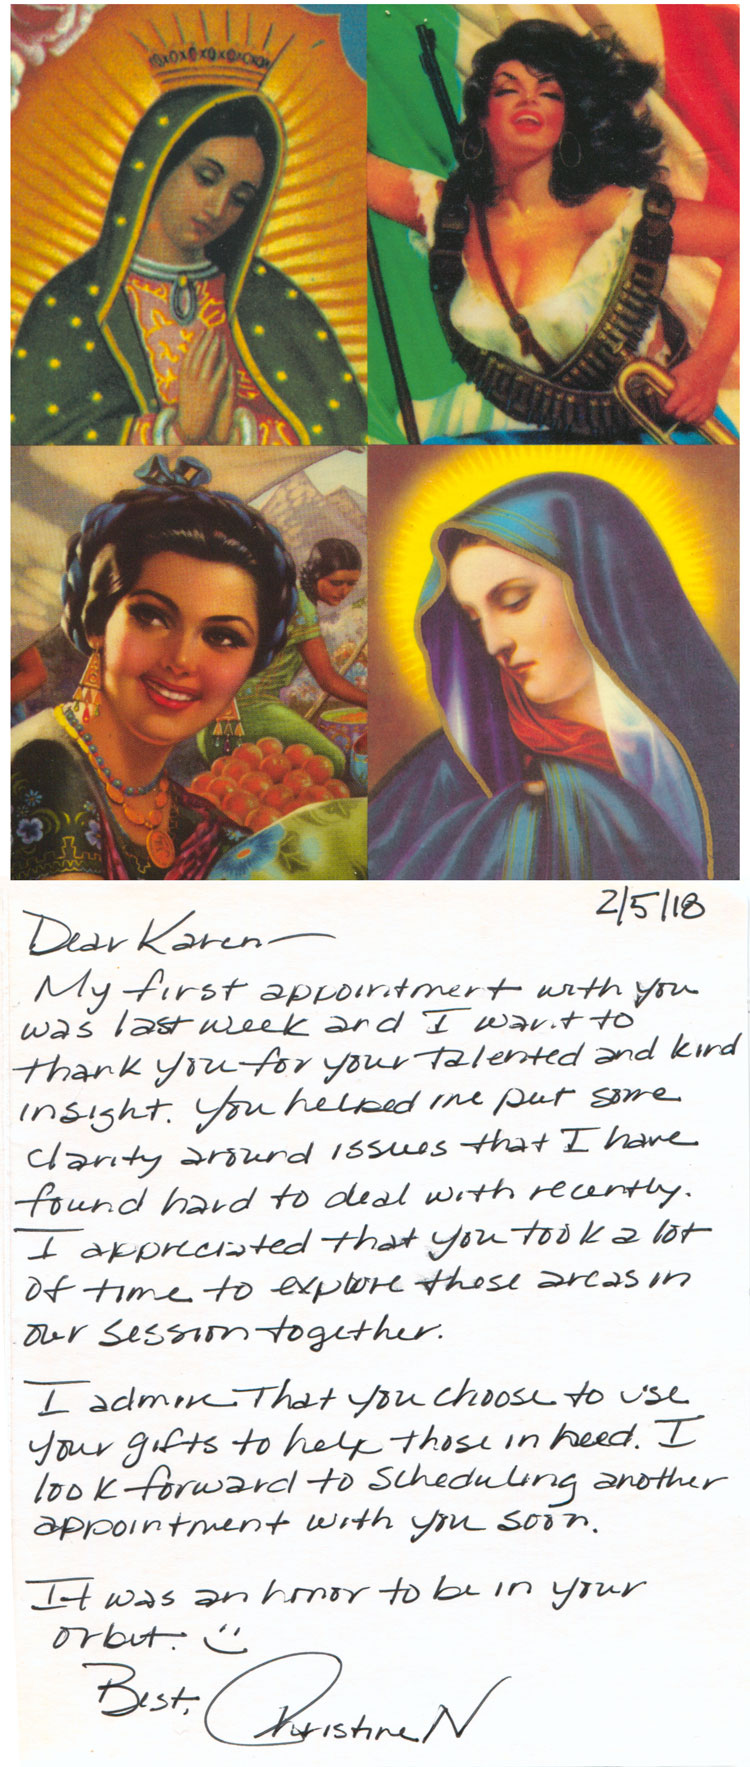 A personal card sent to Karen from Christine N. Text is in the web page.